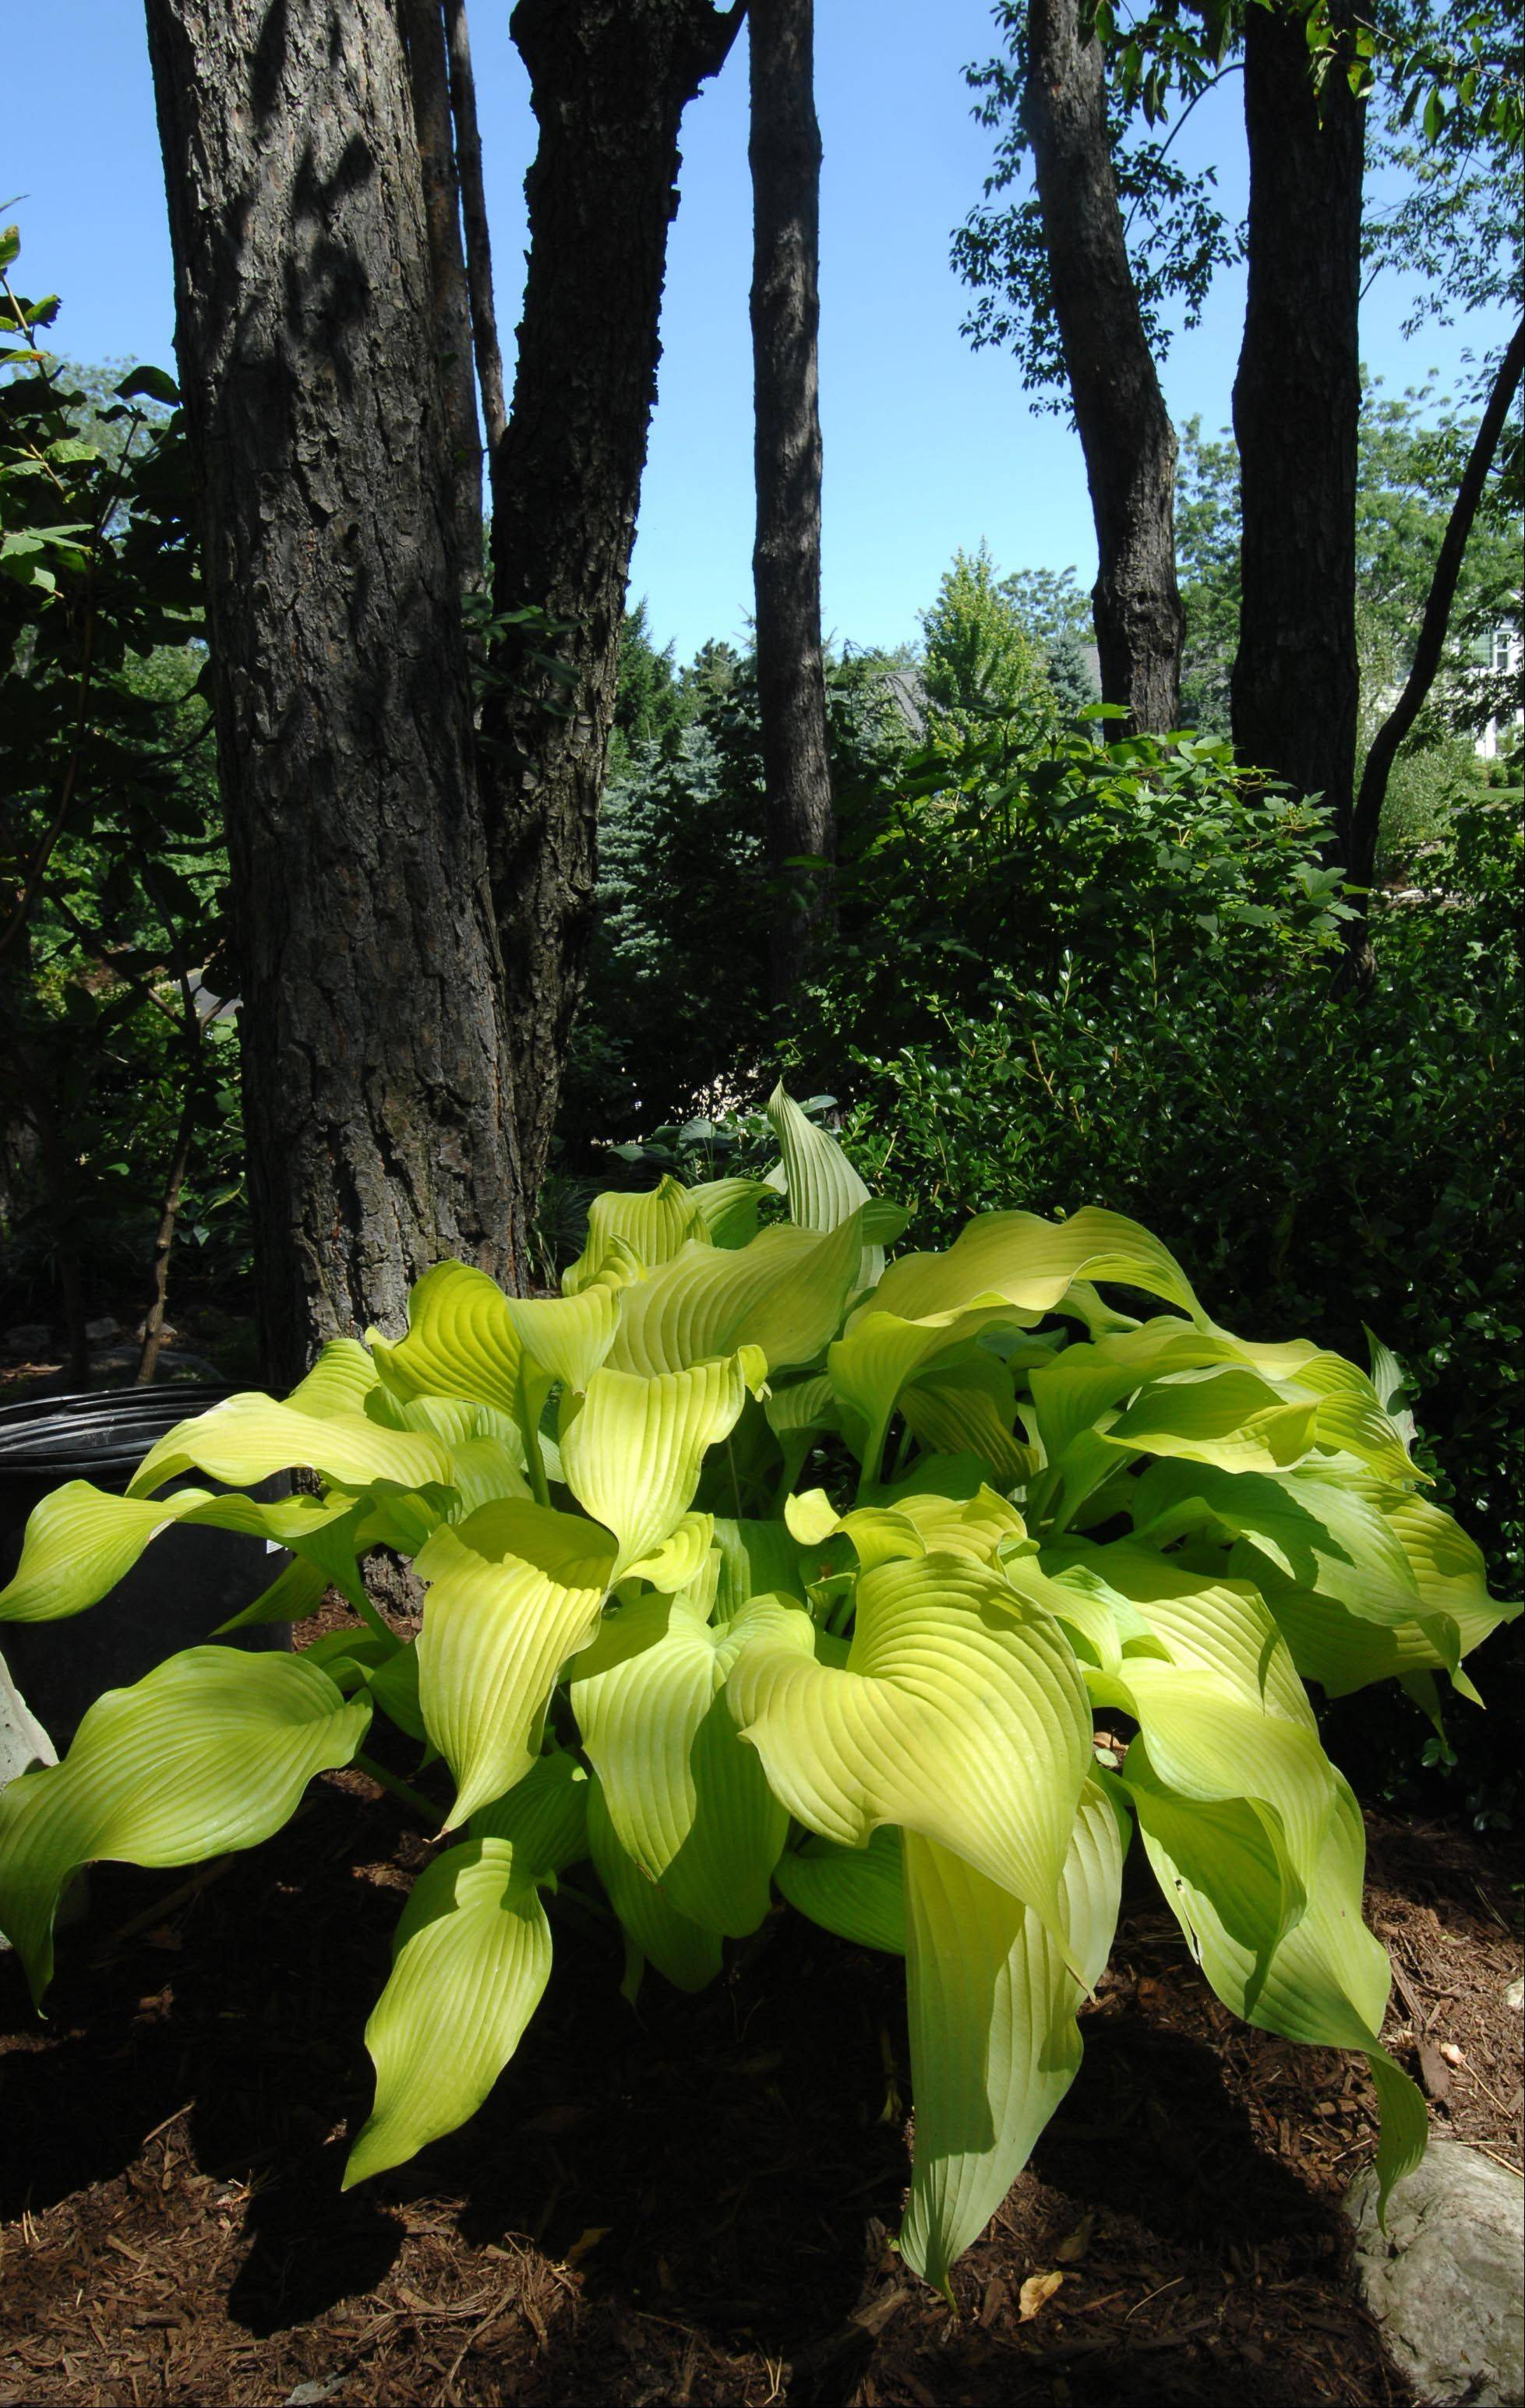 Hostas brighten the gardens of Tranquility Trails.